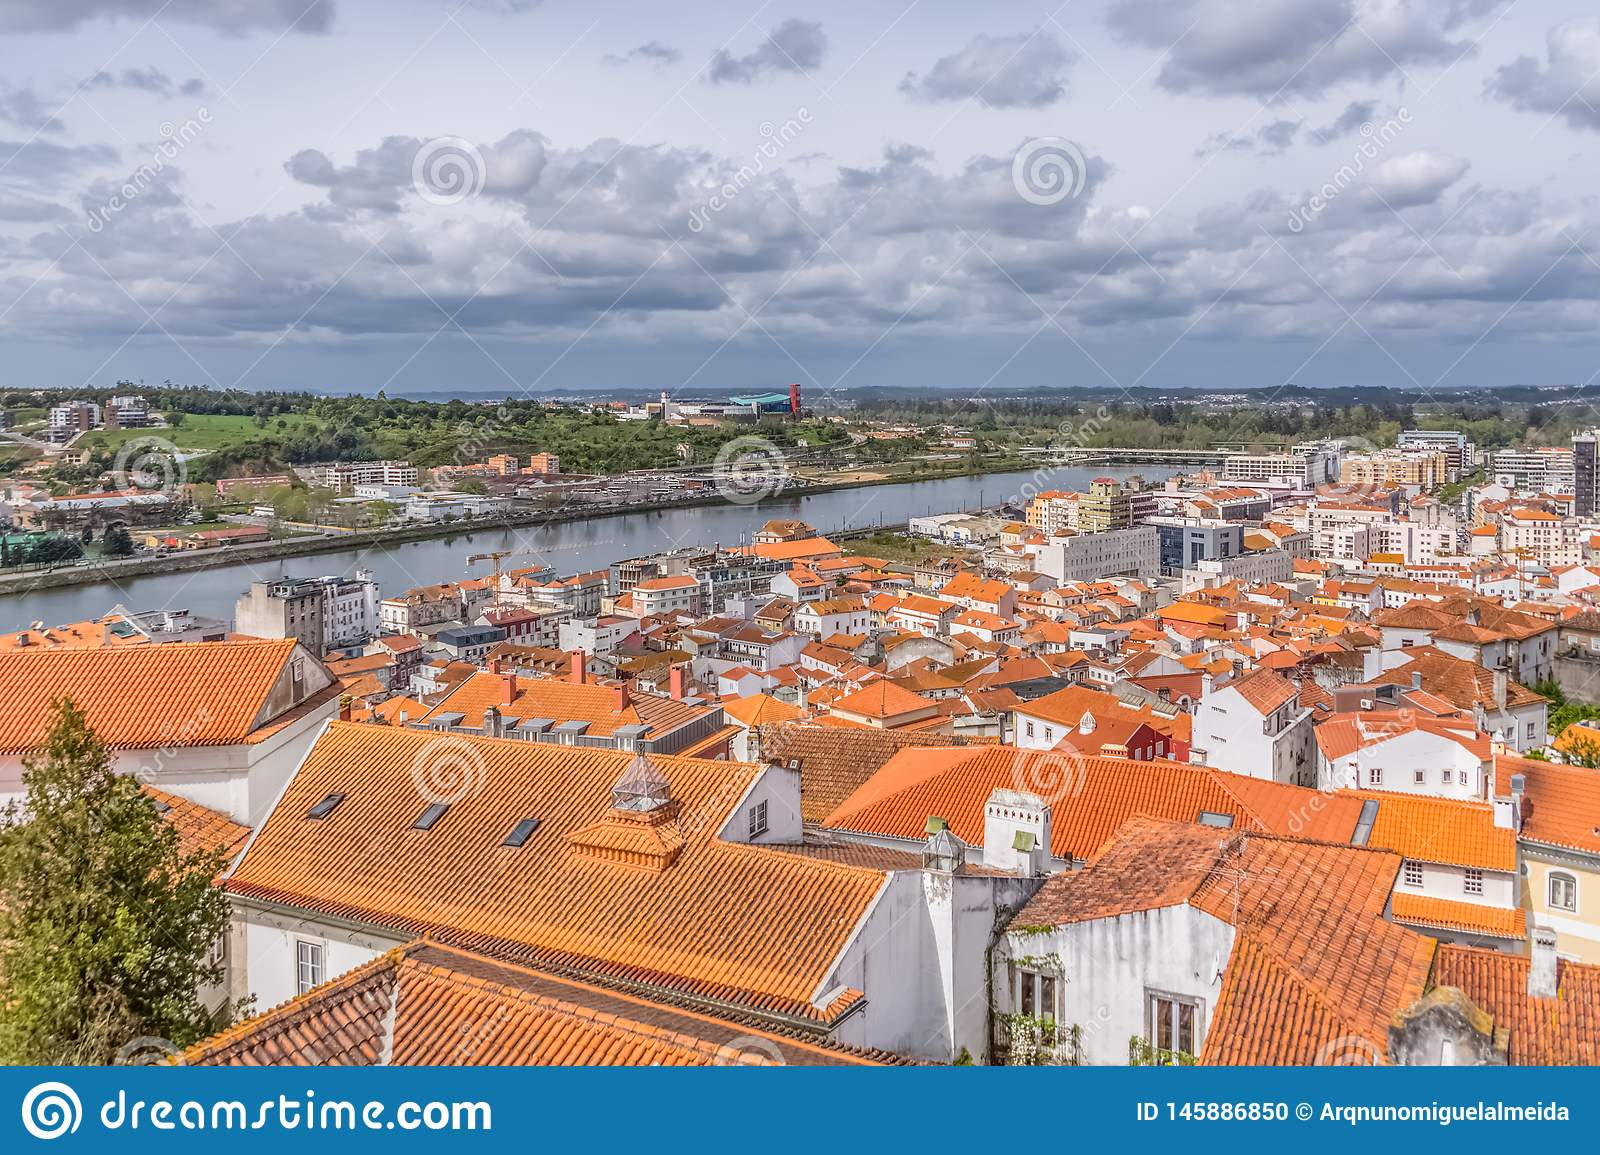 Aerial view on Mondego river and banks with Coimbra city, sky with clouds as background, in Portugal